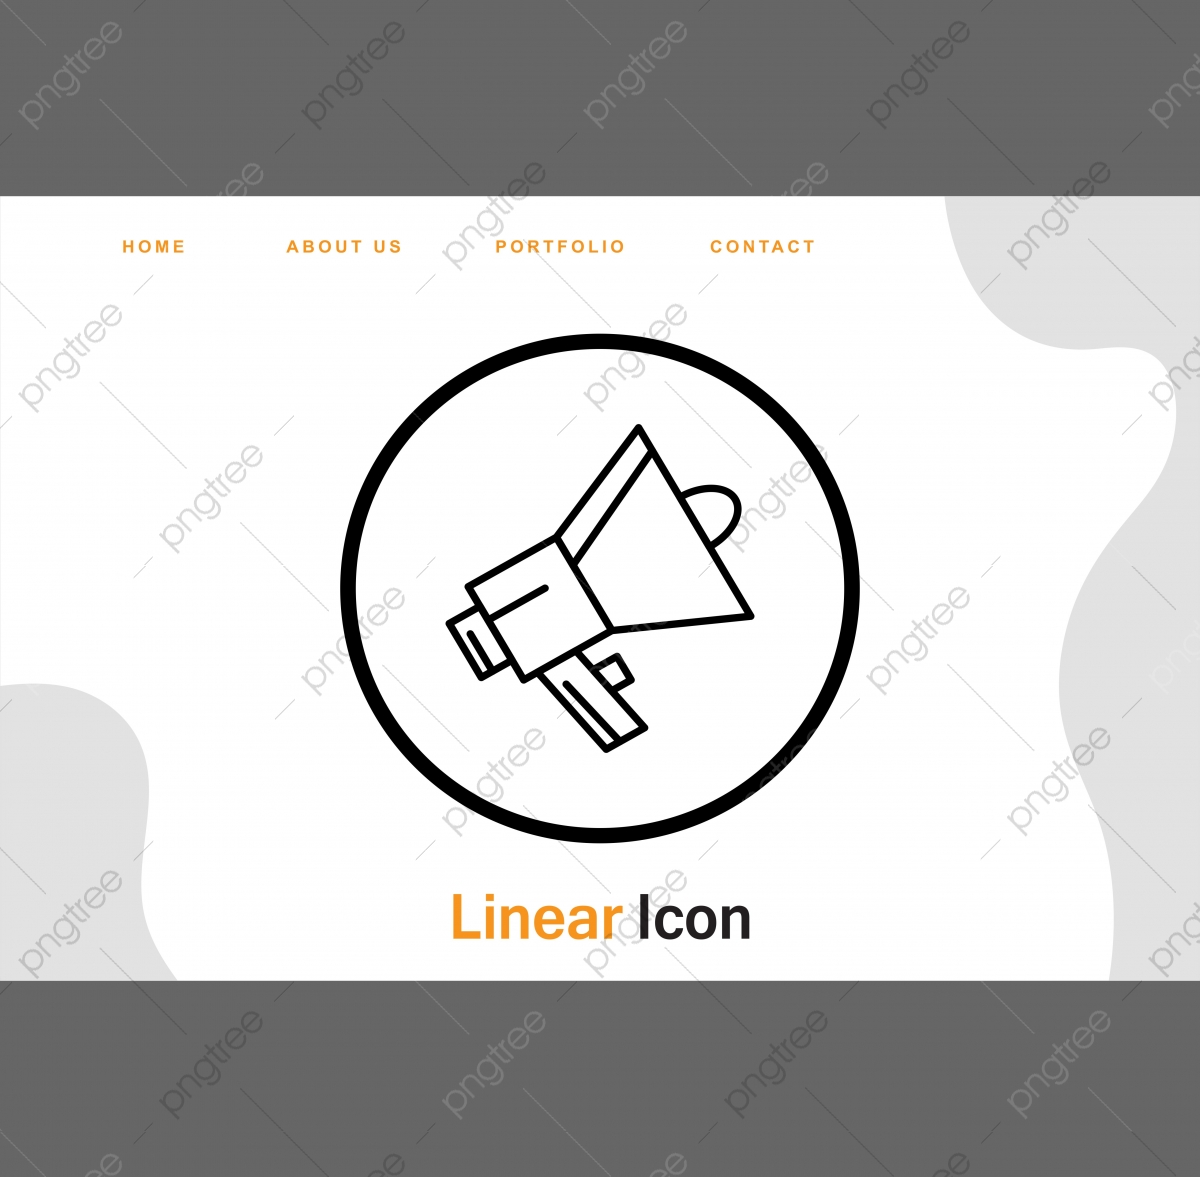 Speaker Icon For Your Project Project Icons Speaker Icons Announcement Icon Png And Vector With Transparent Background For Free Download